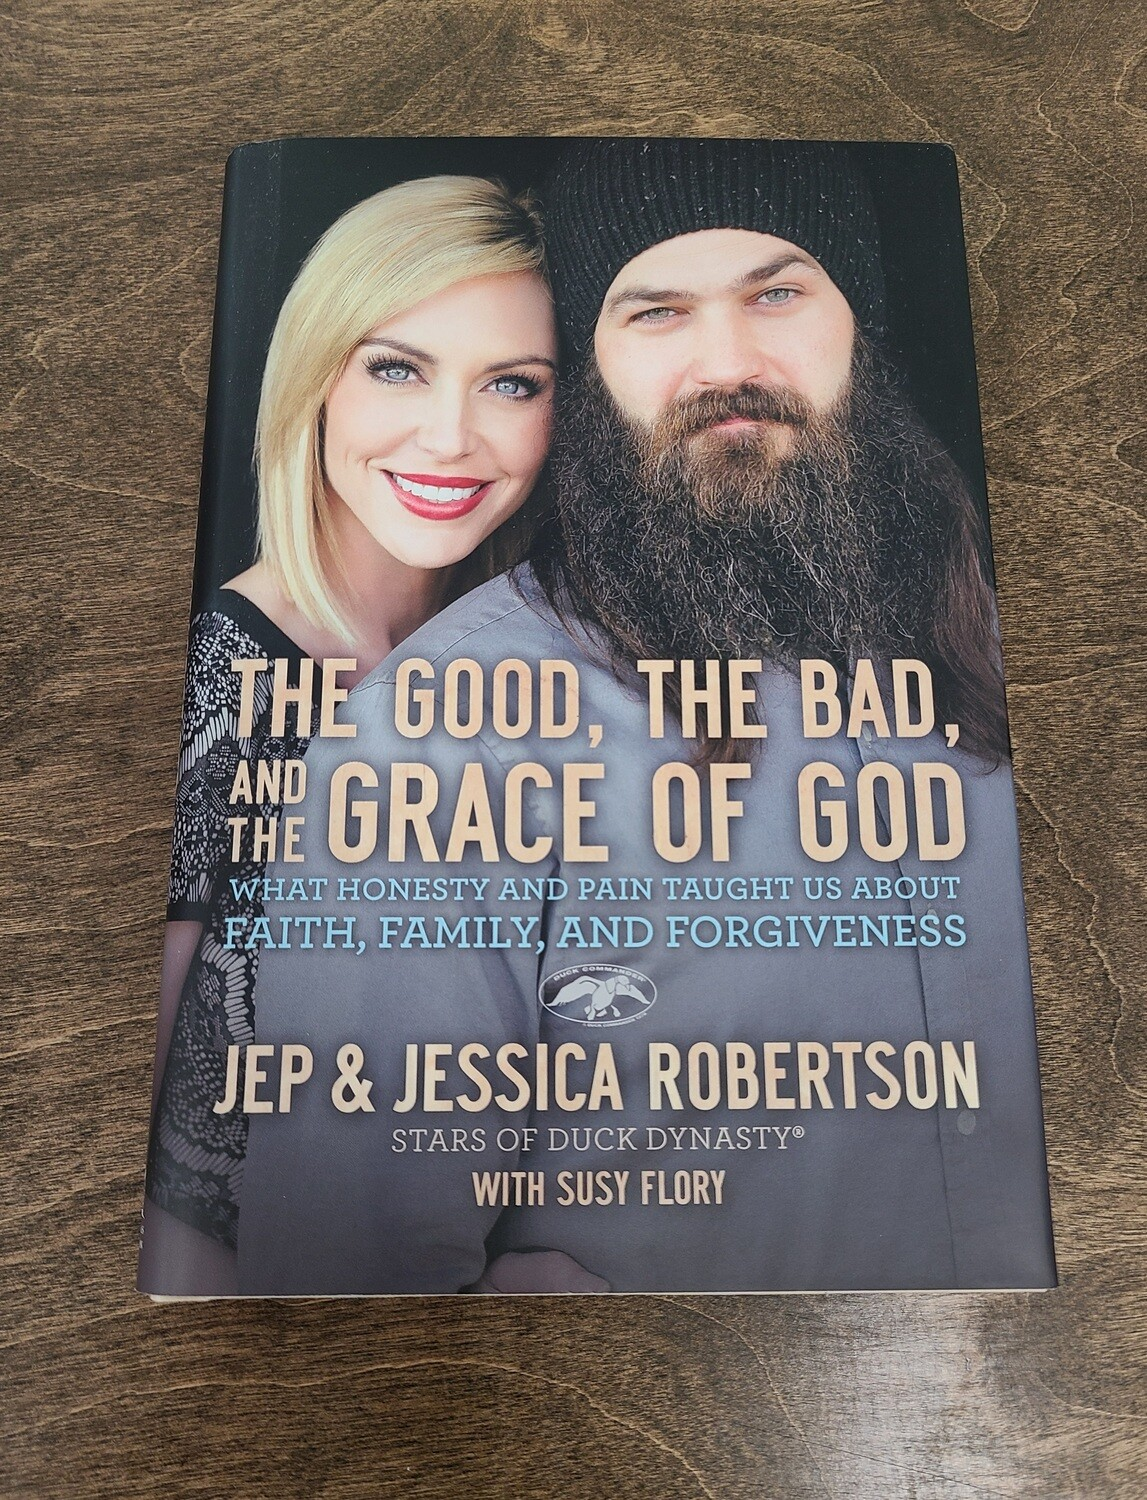 The Good, The Bad, and the Grace of God by Jep and Jessica Robertson with Susy Flory